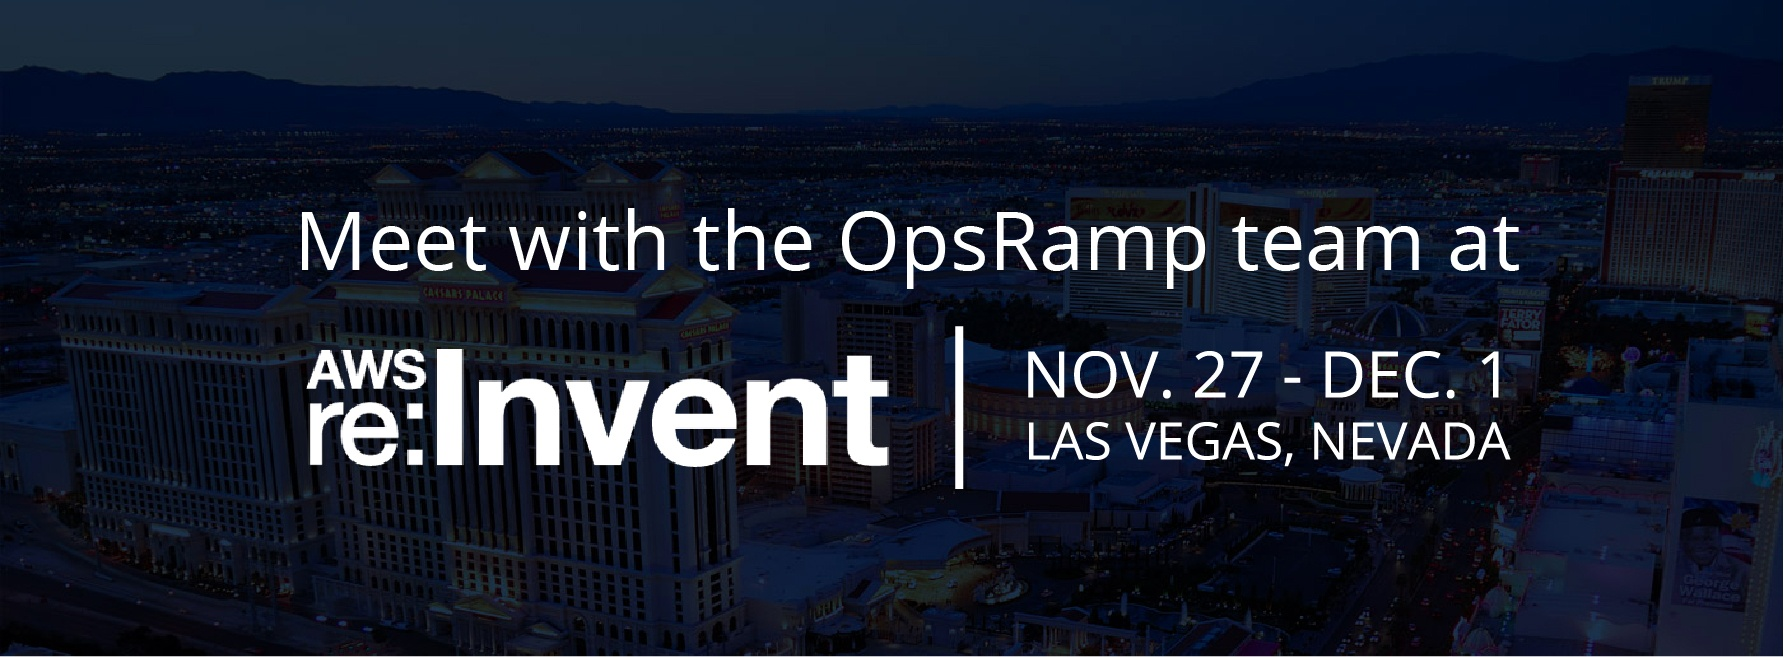 Meet with the OpsRamp team at AWS re:Invent!